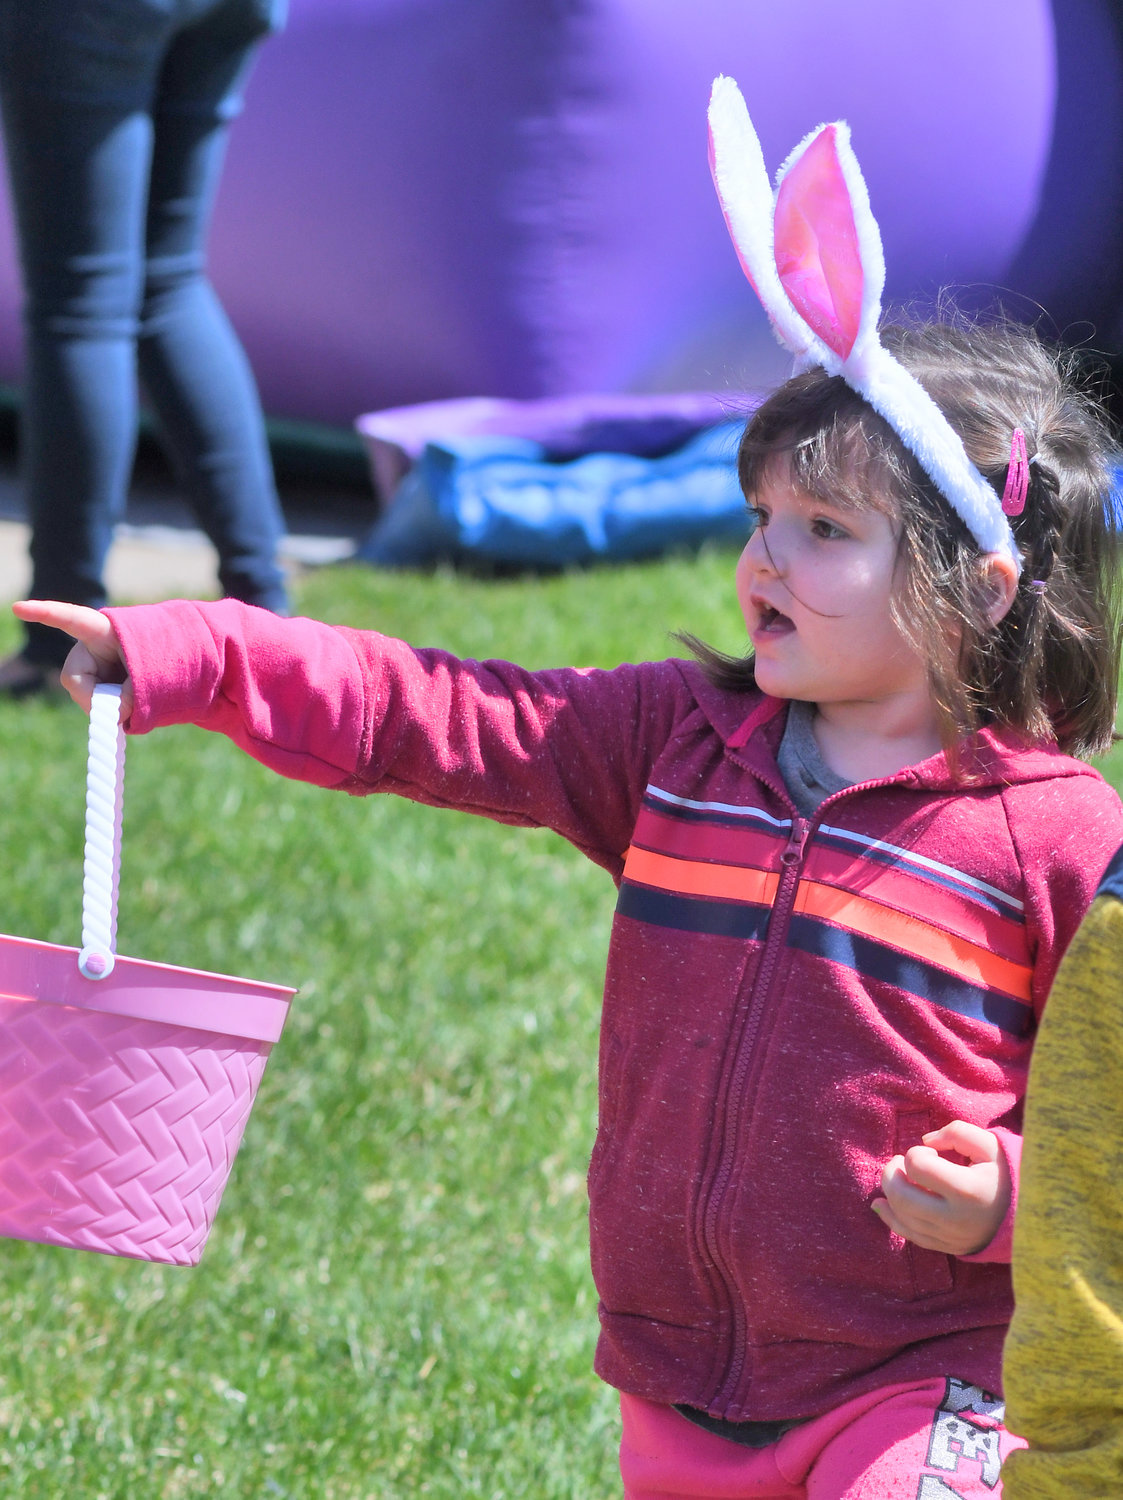 THERE HE IS — Saige Goodhines, 4, points to the Easter Bunny at City Hall on Wednesday afternoon. Saige was at the Easter Egg Hunt with her brother Wyatt Goodhines, 5, and mother Misty Goodhines.